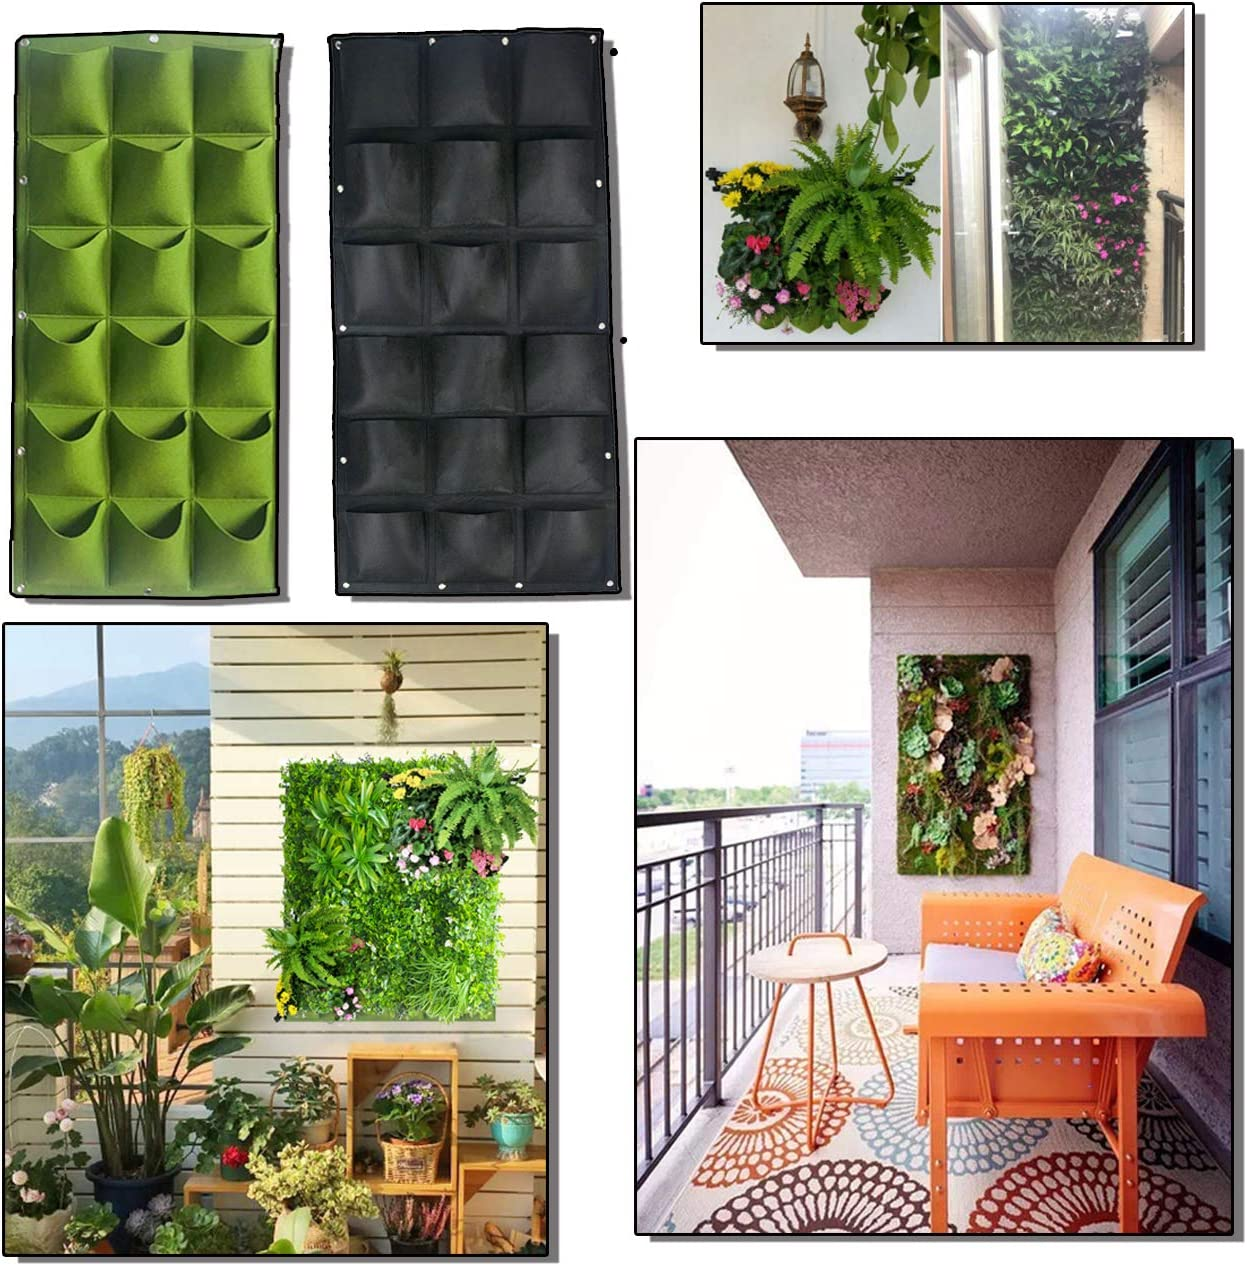 64 Pockets Vertical Wall Garden Planter Pocket Wall Mount Living Plant Growing Bag for Flower Vegetable Outdoor Wall Decor for Patios and Gardens Widely Used in Home Decor Shopping mall Office Hotel